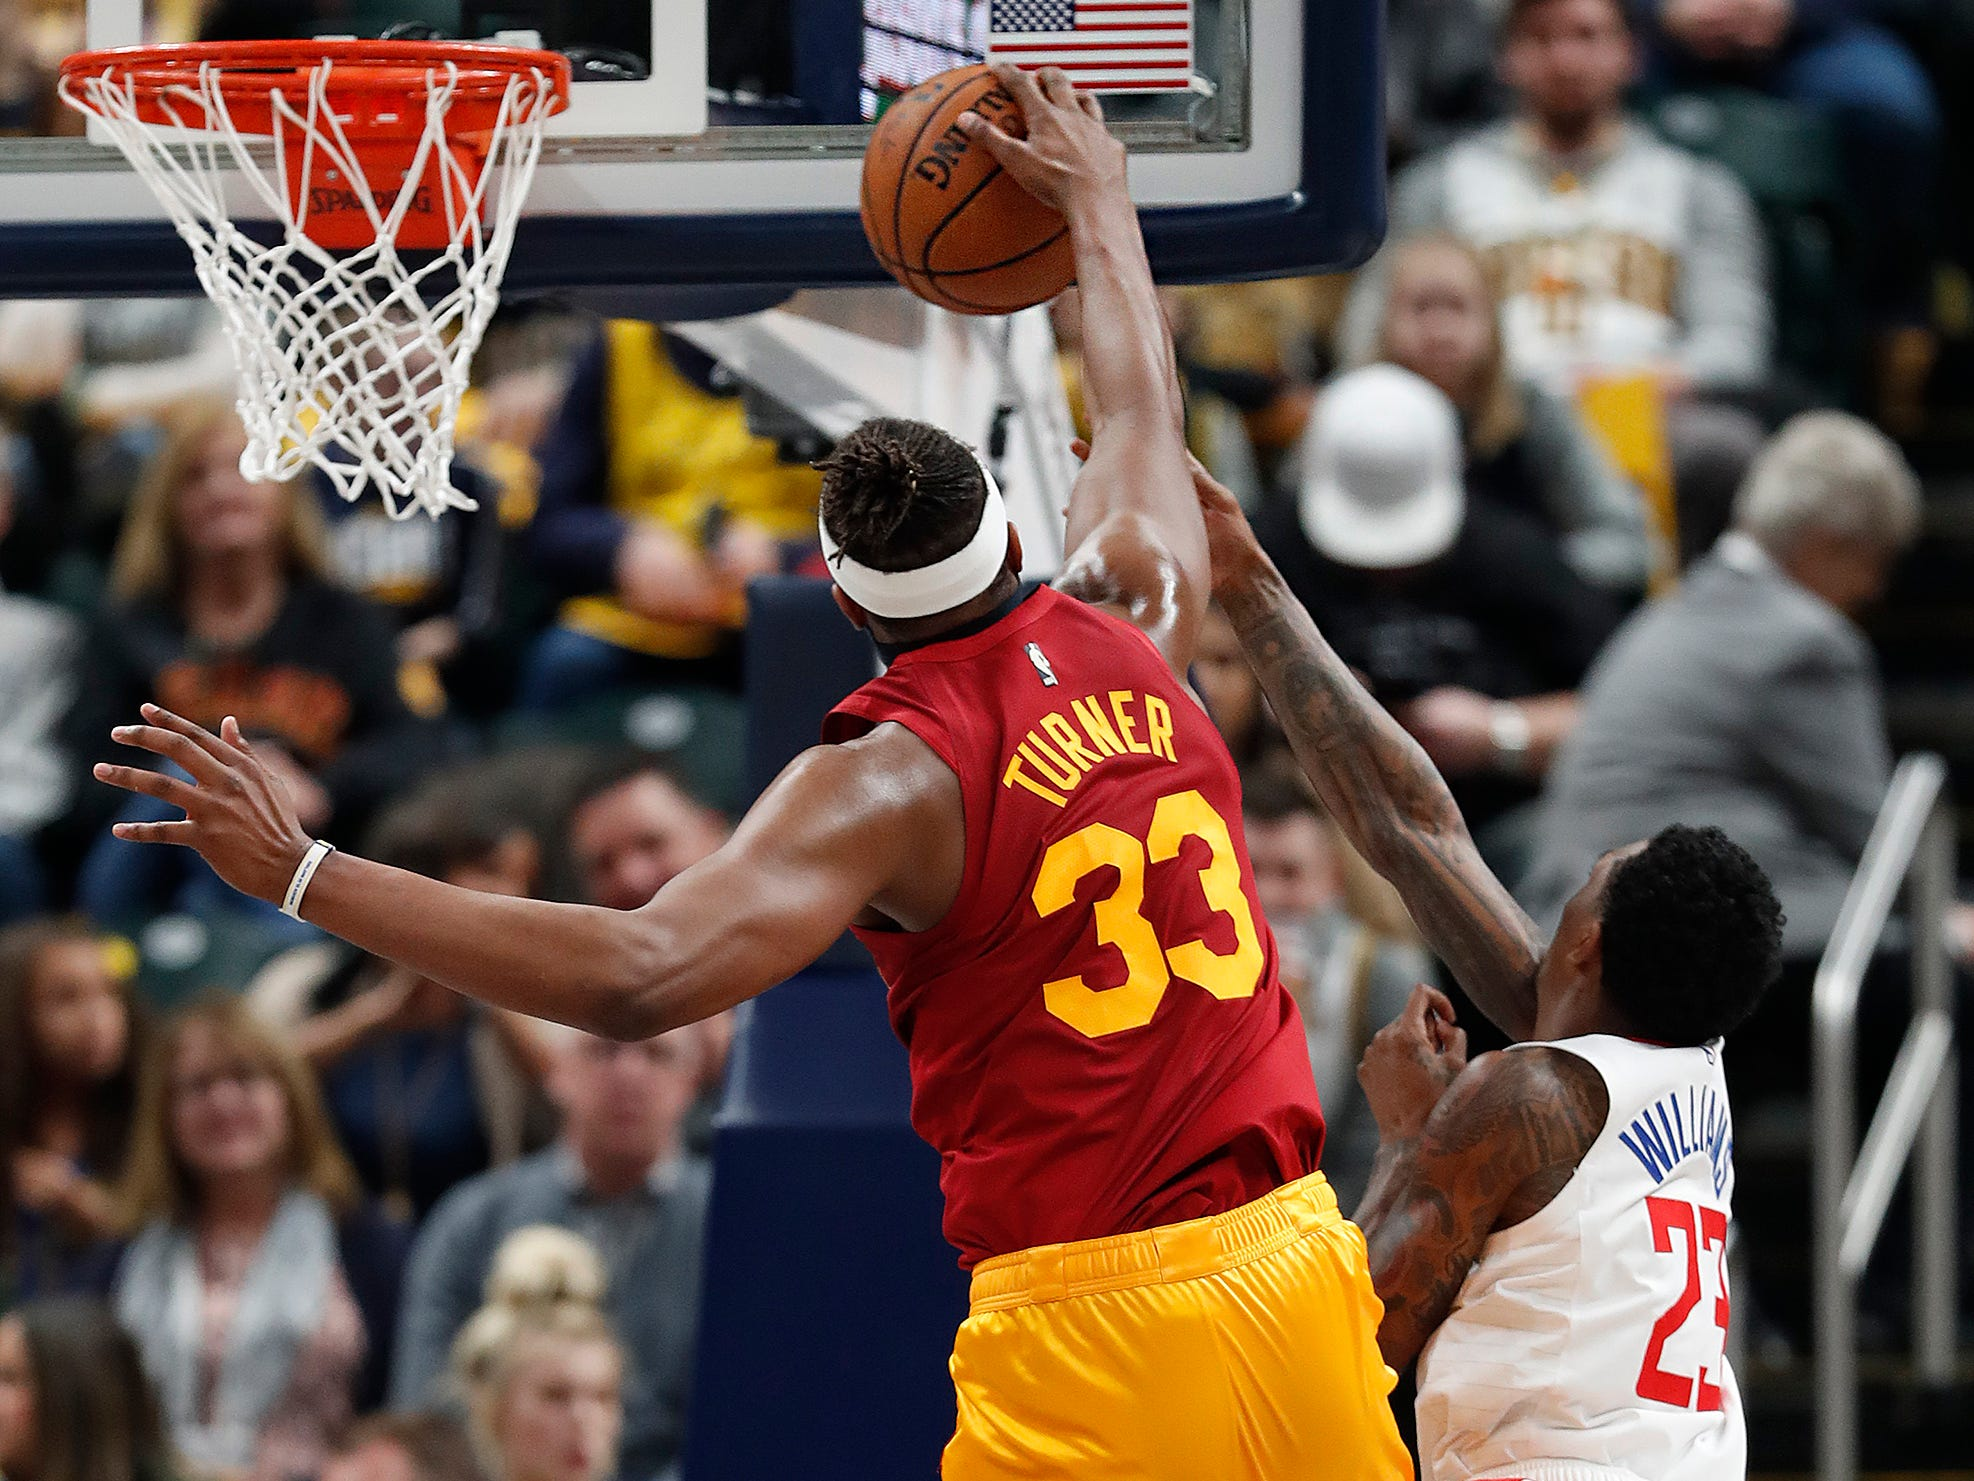 Indiana Pacers center Myles Turner (33) blocks the shot by LA Clippers guard Lou Williams (23) in the second half of their game at Bankers Life Fieldhouse on Thursday, Feb. 7, 2019.